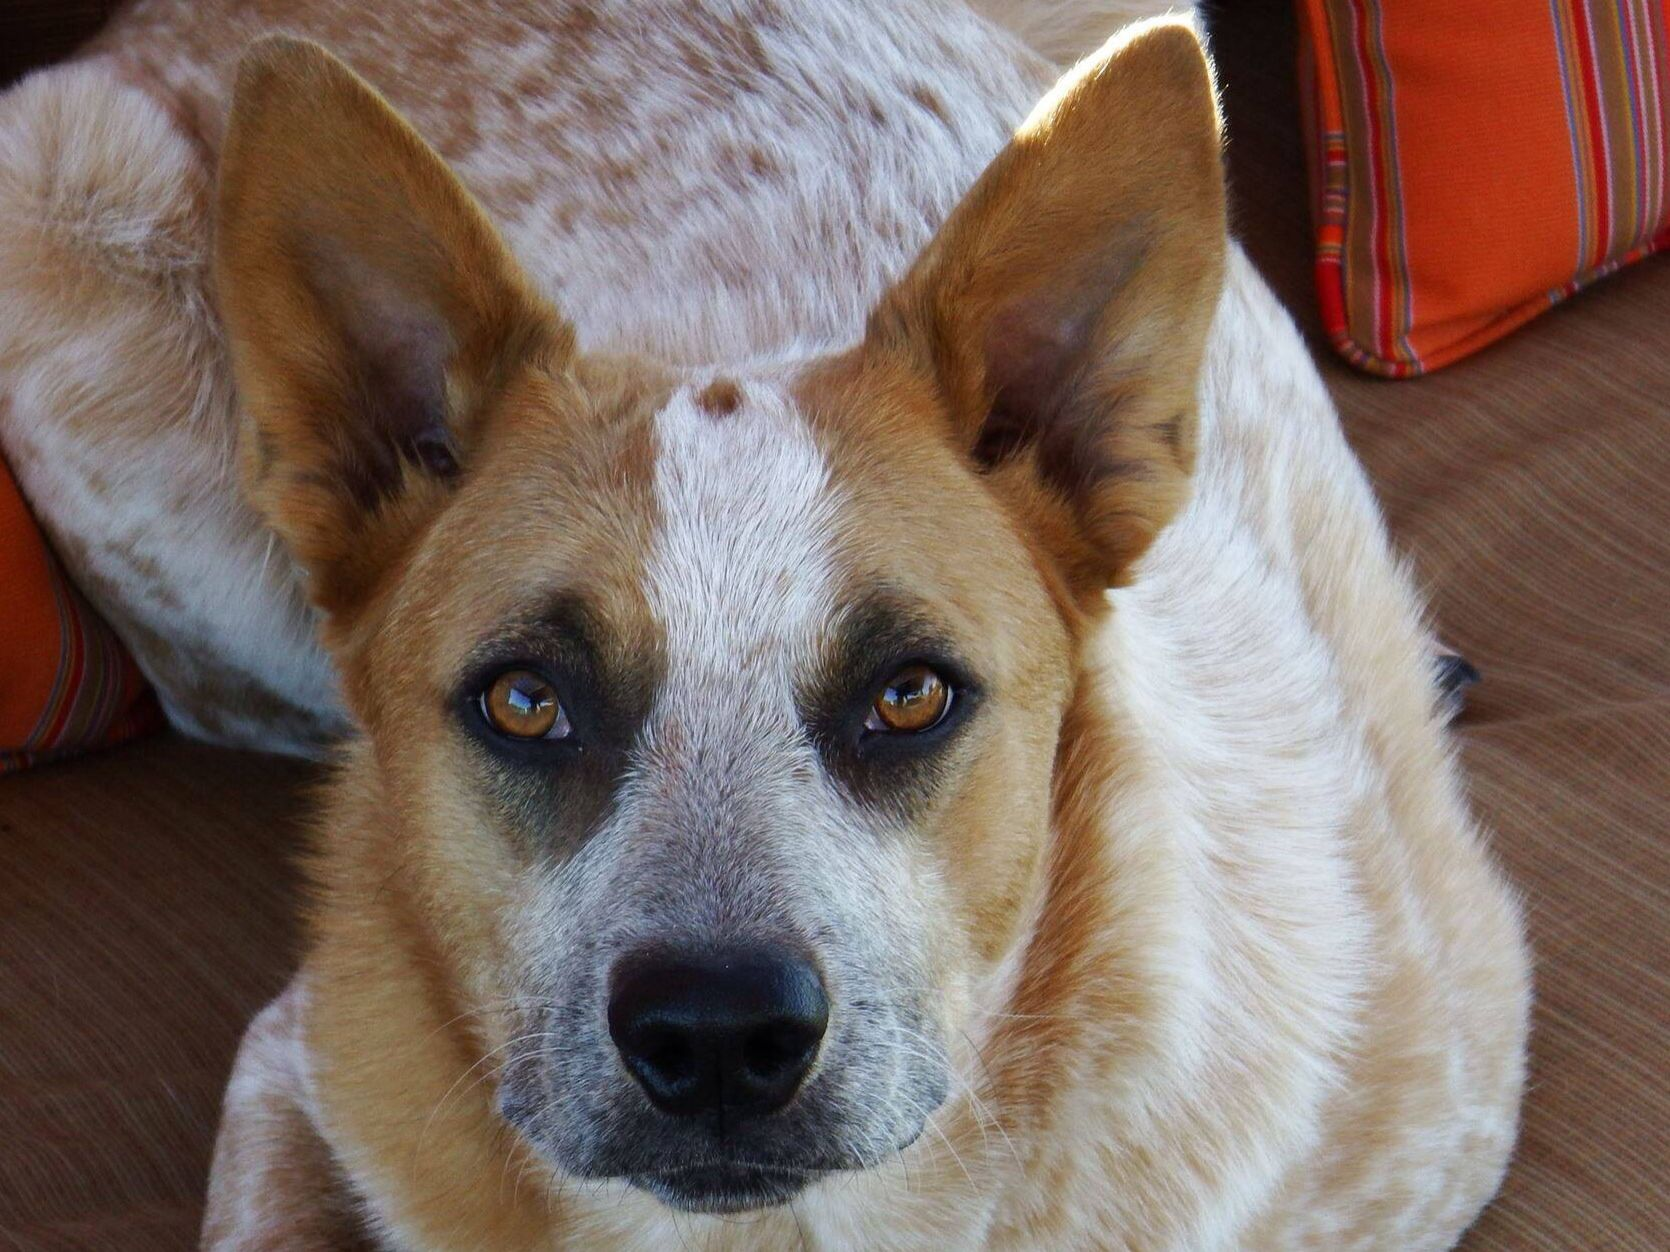 Our Red Heeler Rosie Has Eyes Like This Looks Like She Uses Eye